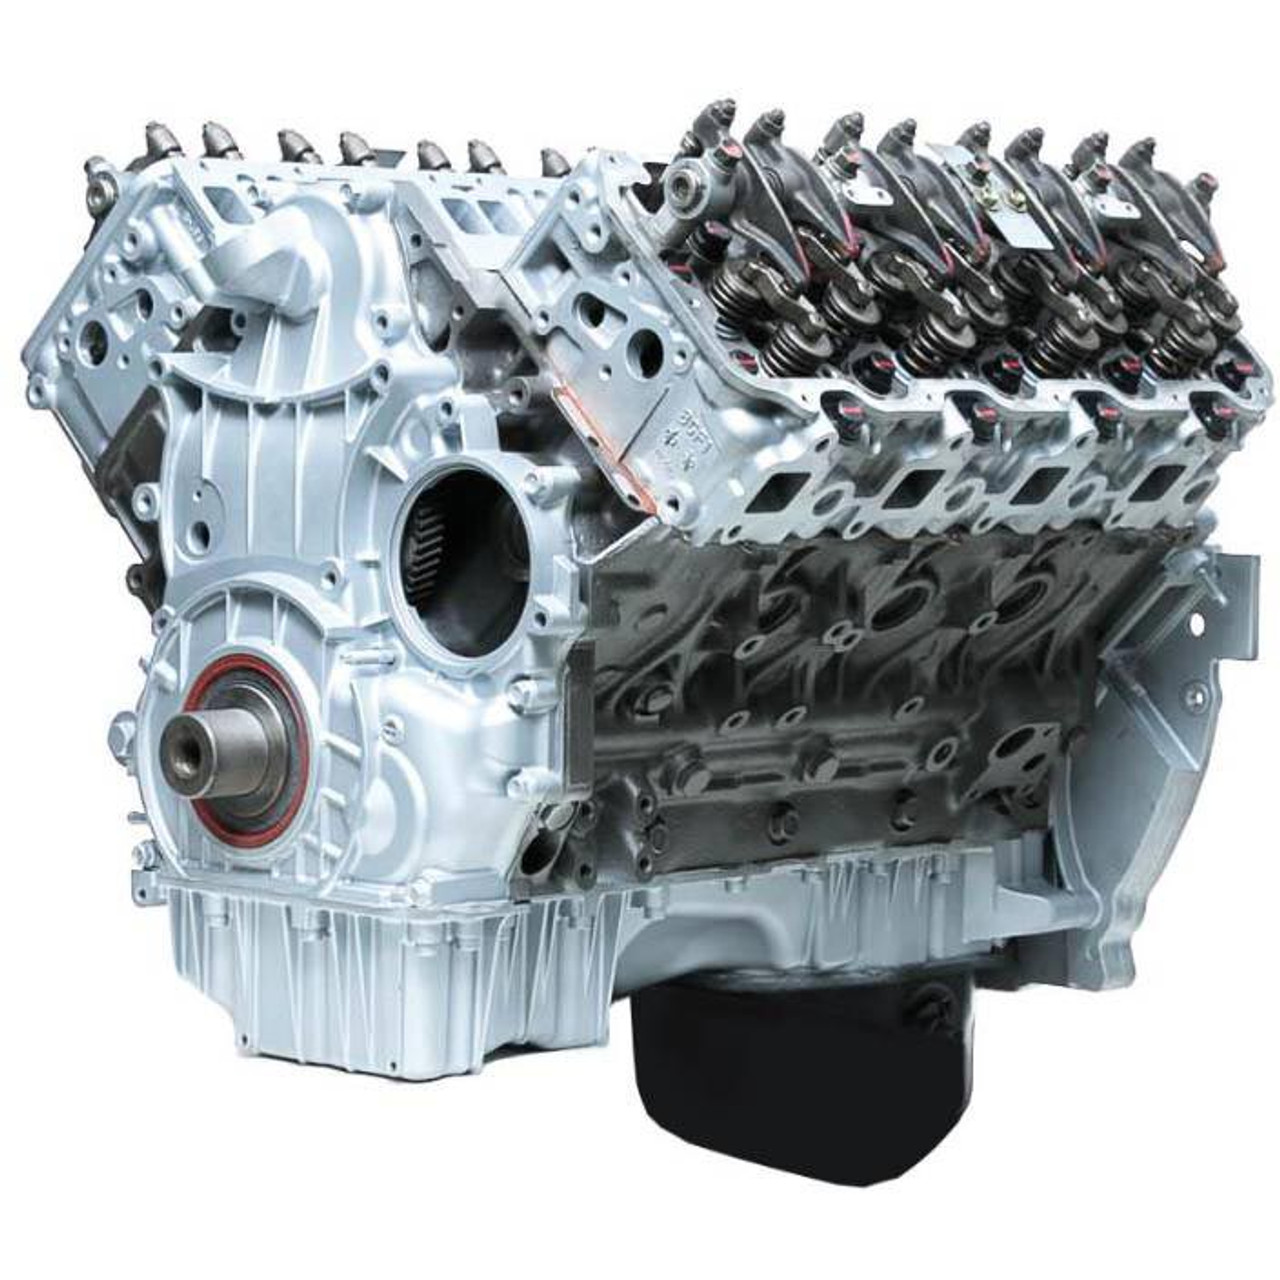 DFC Remanufactured 06-07 Duramax 6.6 LBZ Long Block Engine